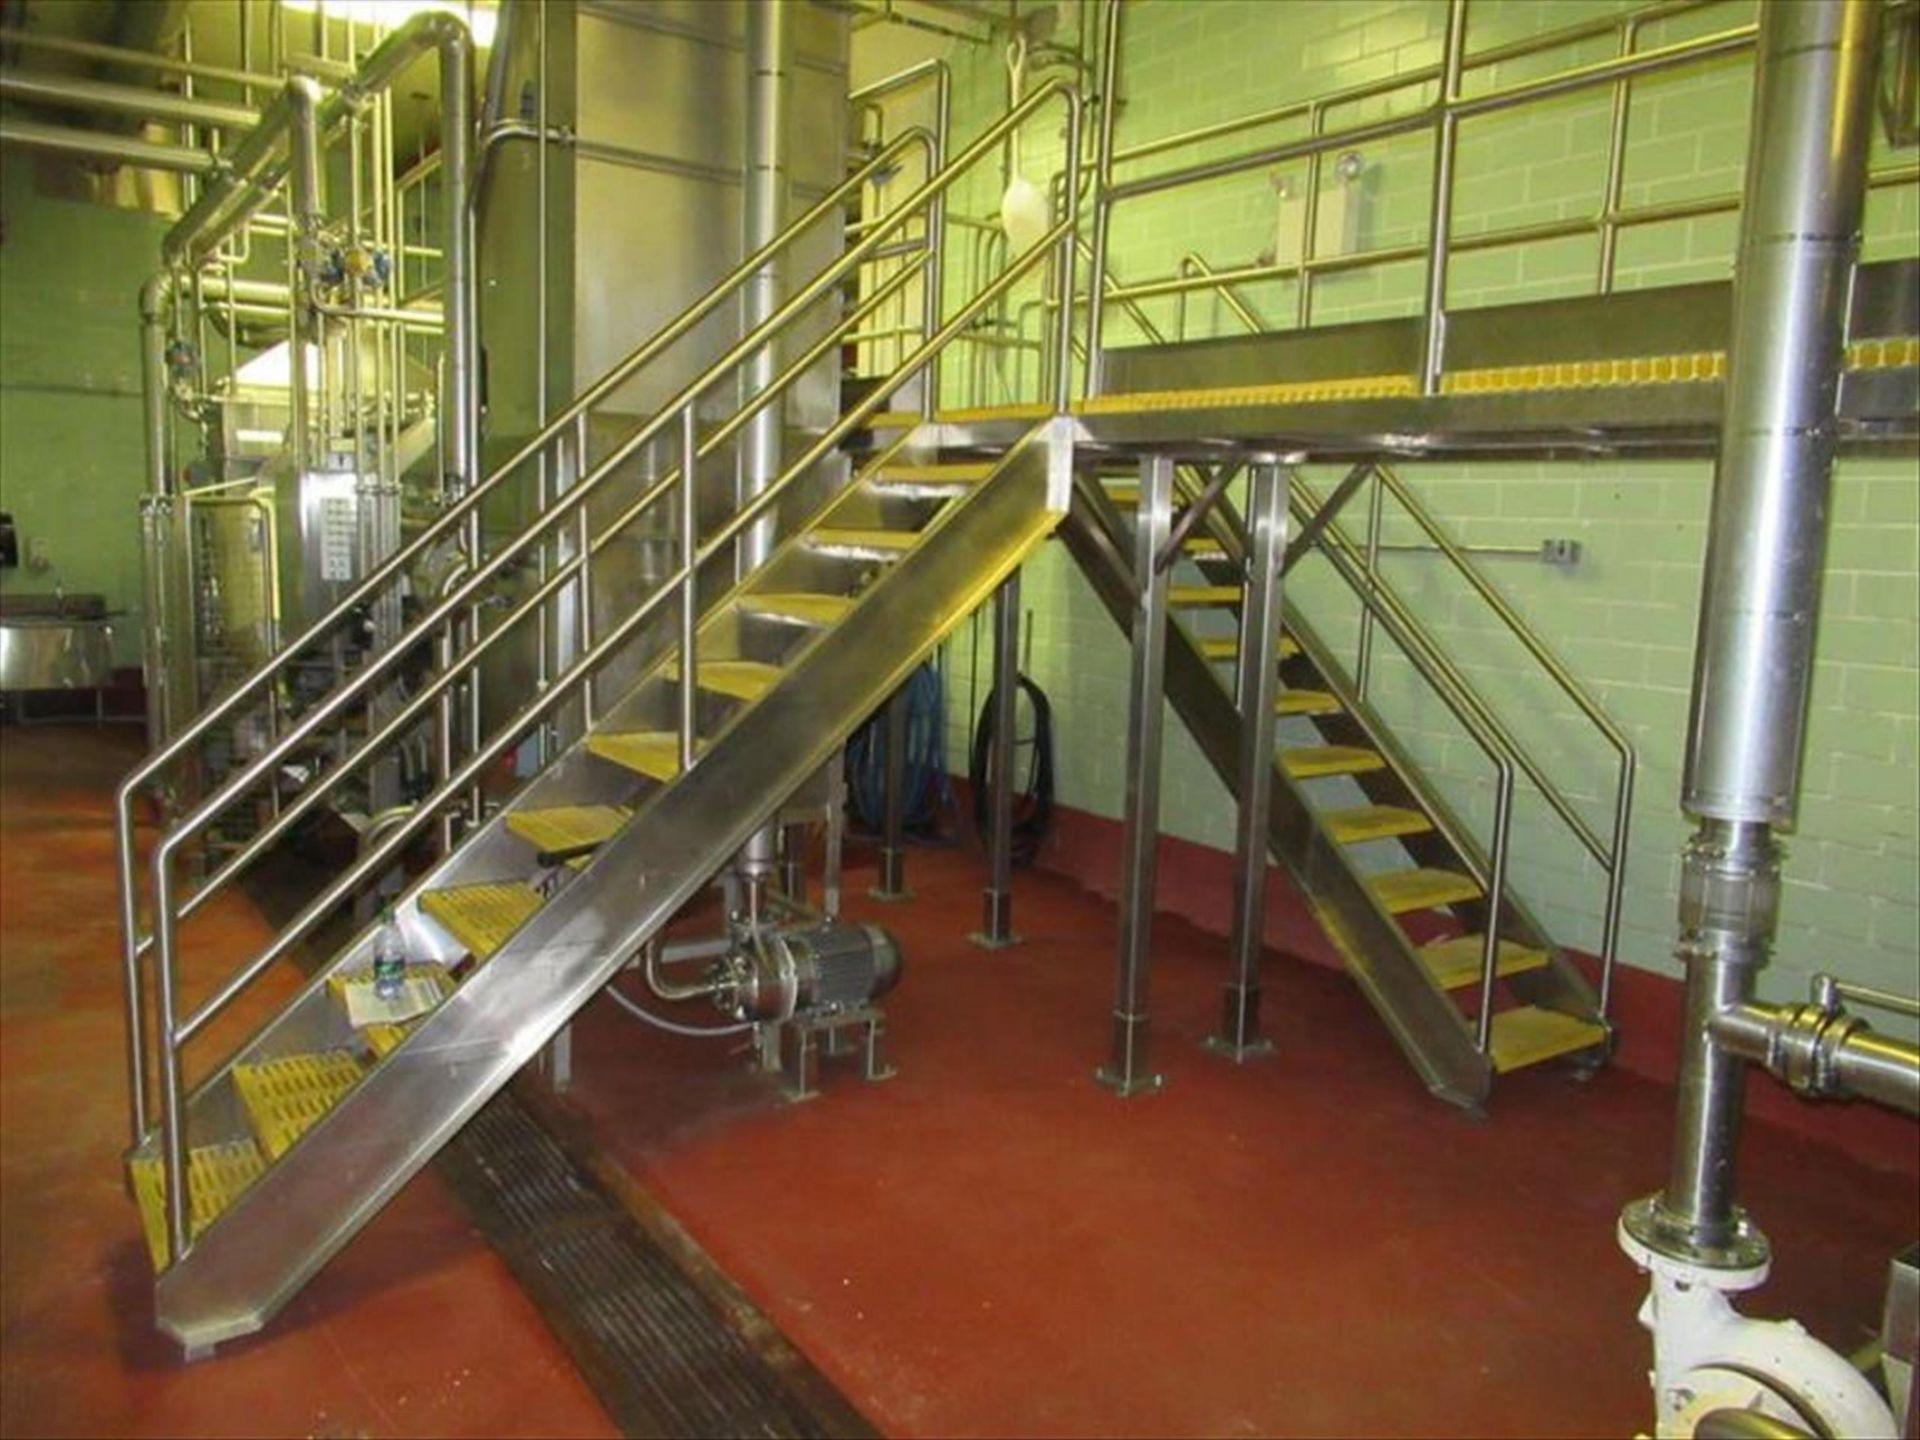 Lot 223 - Blancher inspection platform with (2) 10 steps stairways, Hd stainless framing and safety rails,